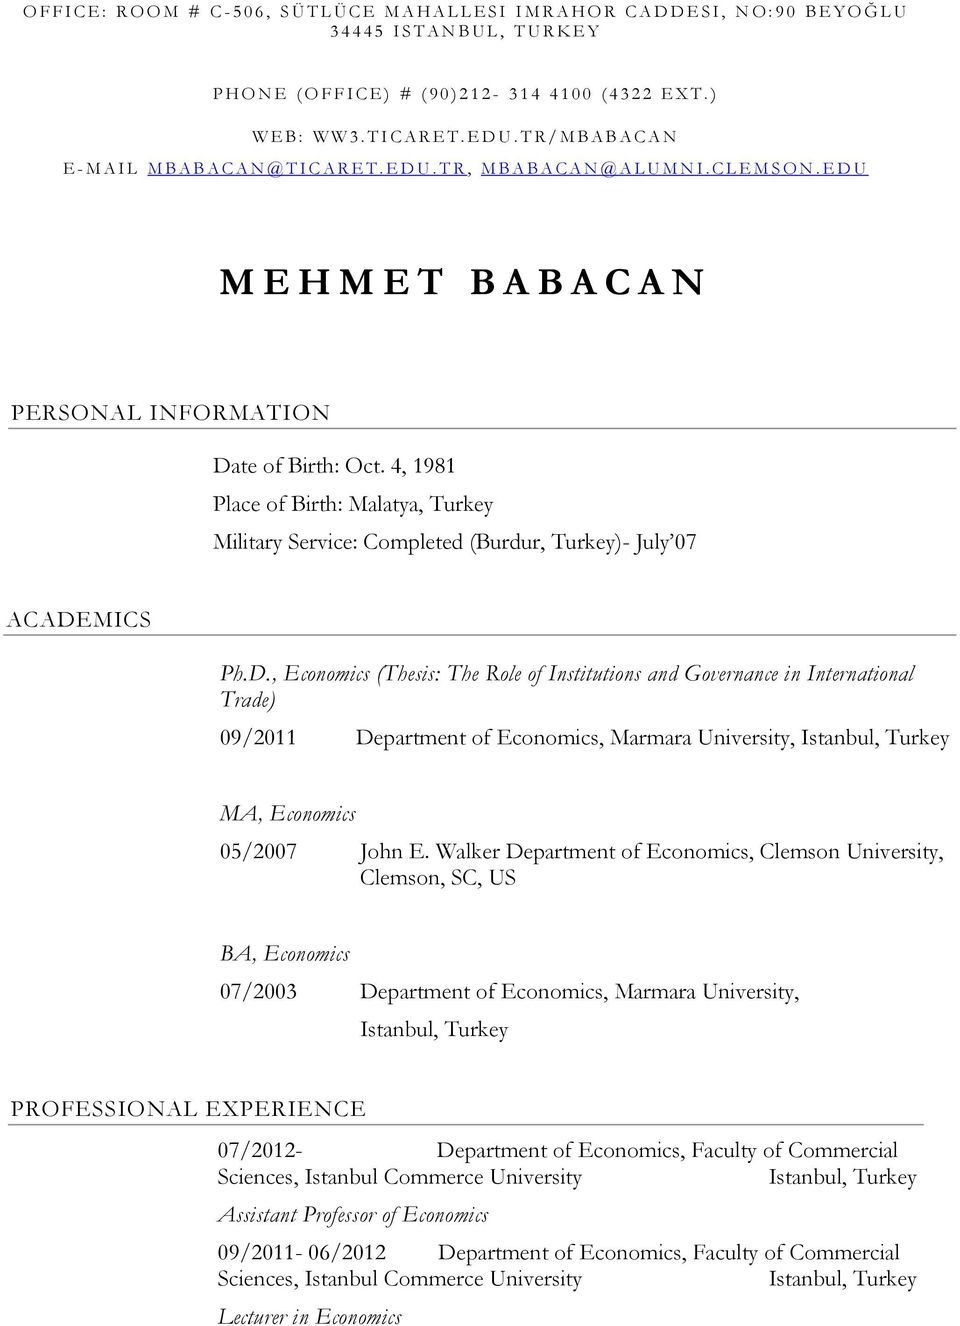 E D U M E H M E T B A B A C A N PERSONAL INFORMATION Date of Birth: Oct. 4, 1981 Place of Birth: Malatya, Turkey Military Service: Completed (Burdur, Turkey)- July 07 ACADEMICS Ph.D., Economics (Thesis: The Role of Institutions and Governance in International Trade) 09/2011 Department of Economics, Marmara University, MA, Economics 05/2007 John E.